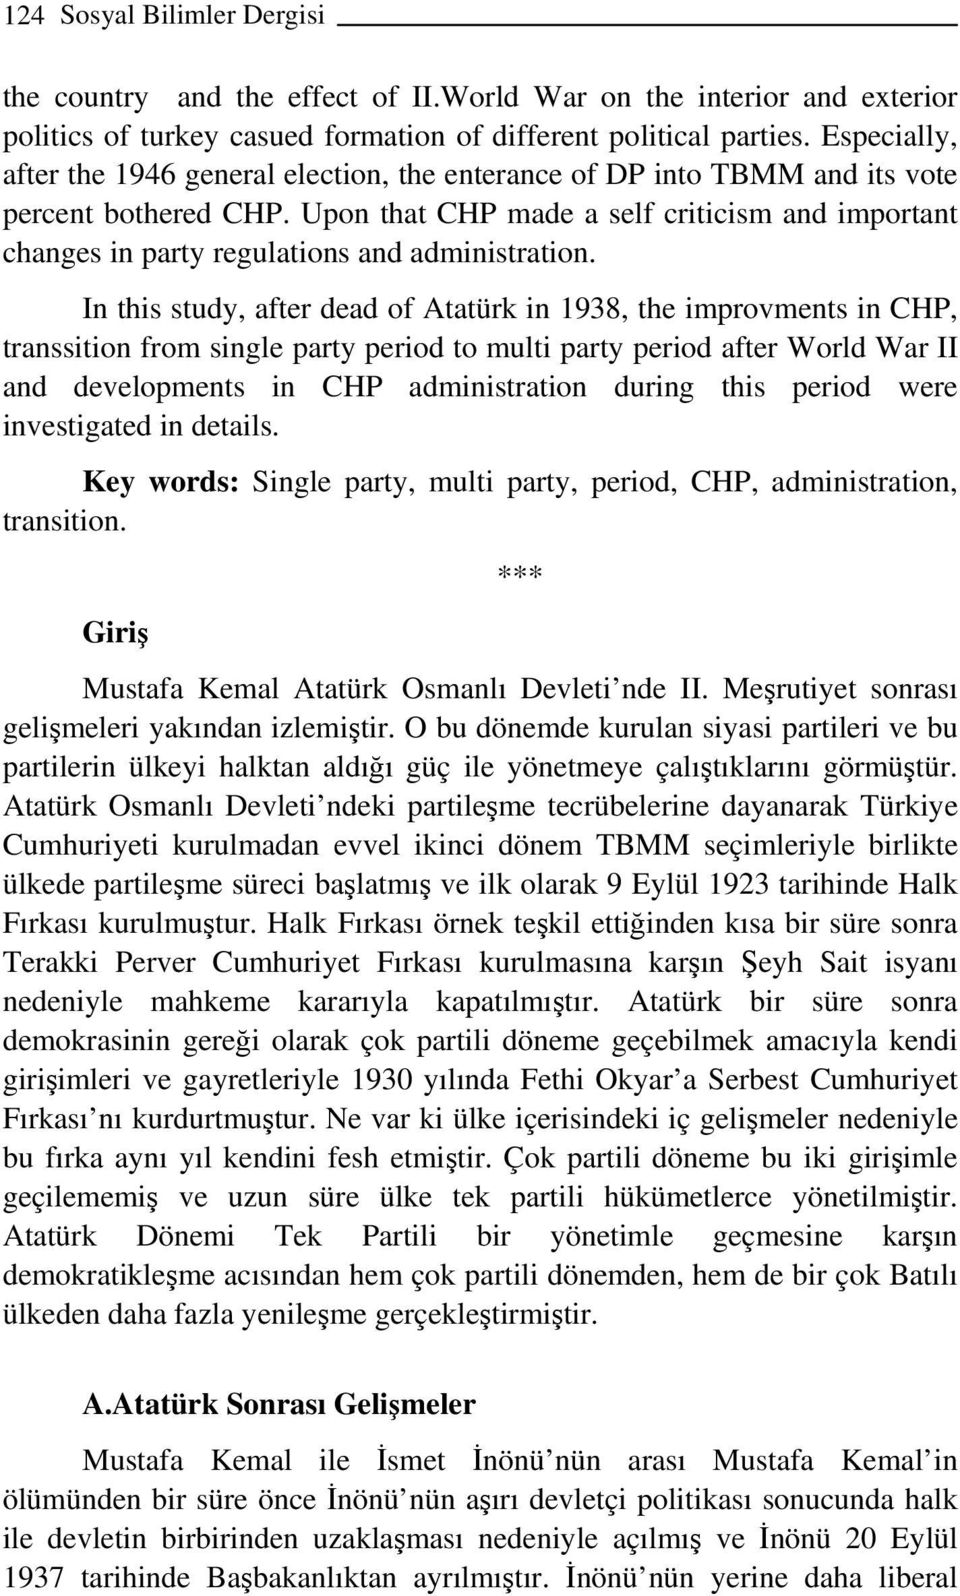 Upon that CHP made a self criticism and important changes in party regulations and administration.